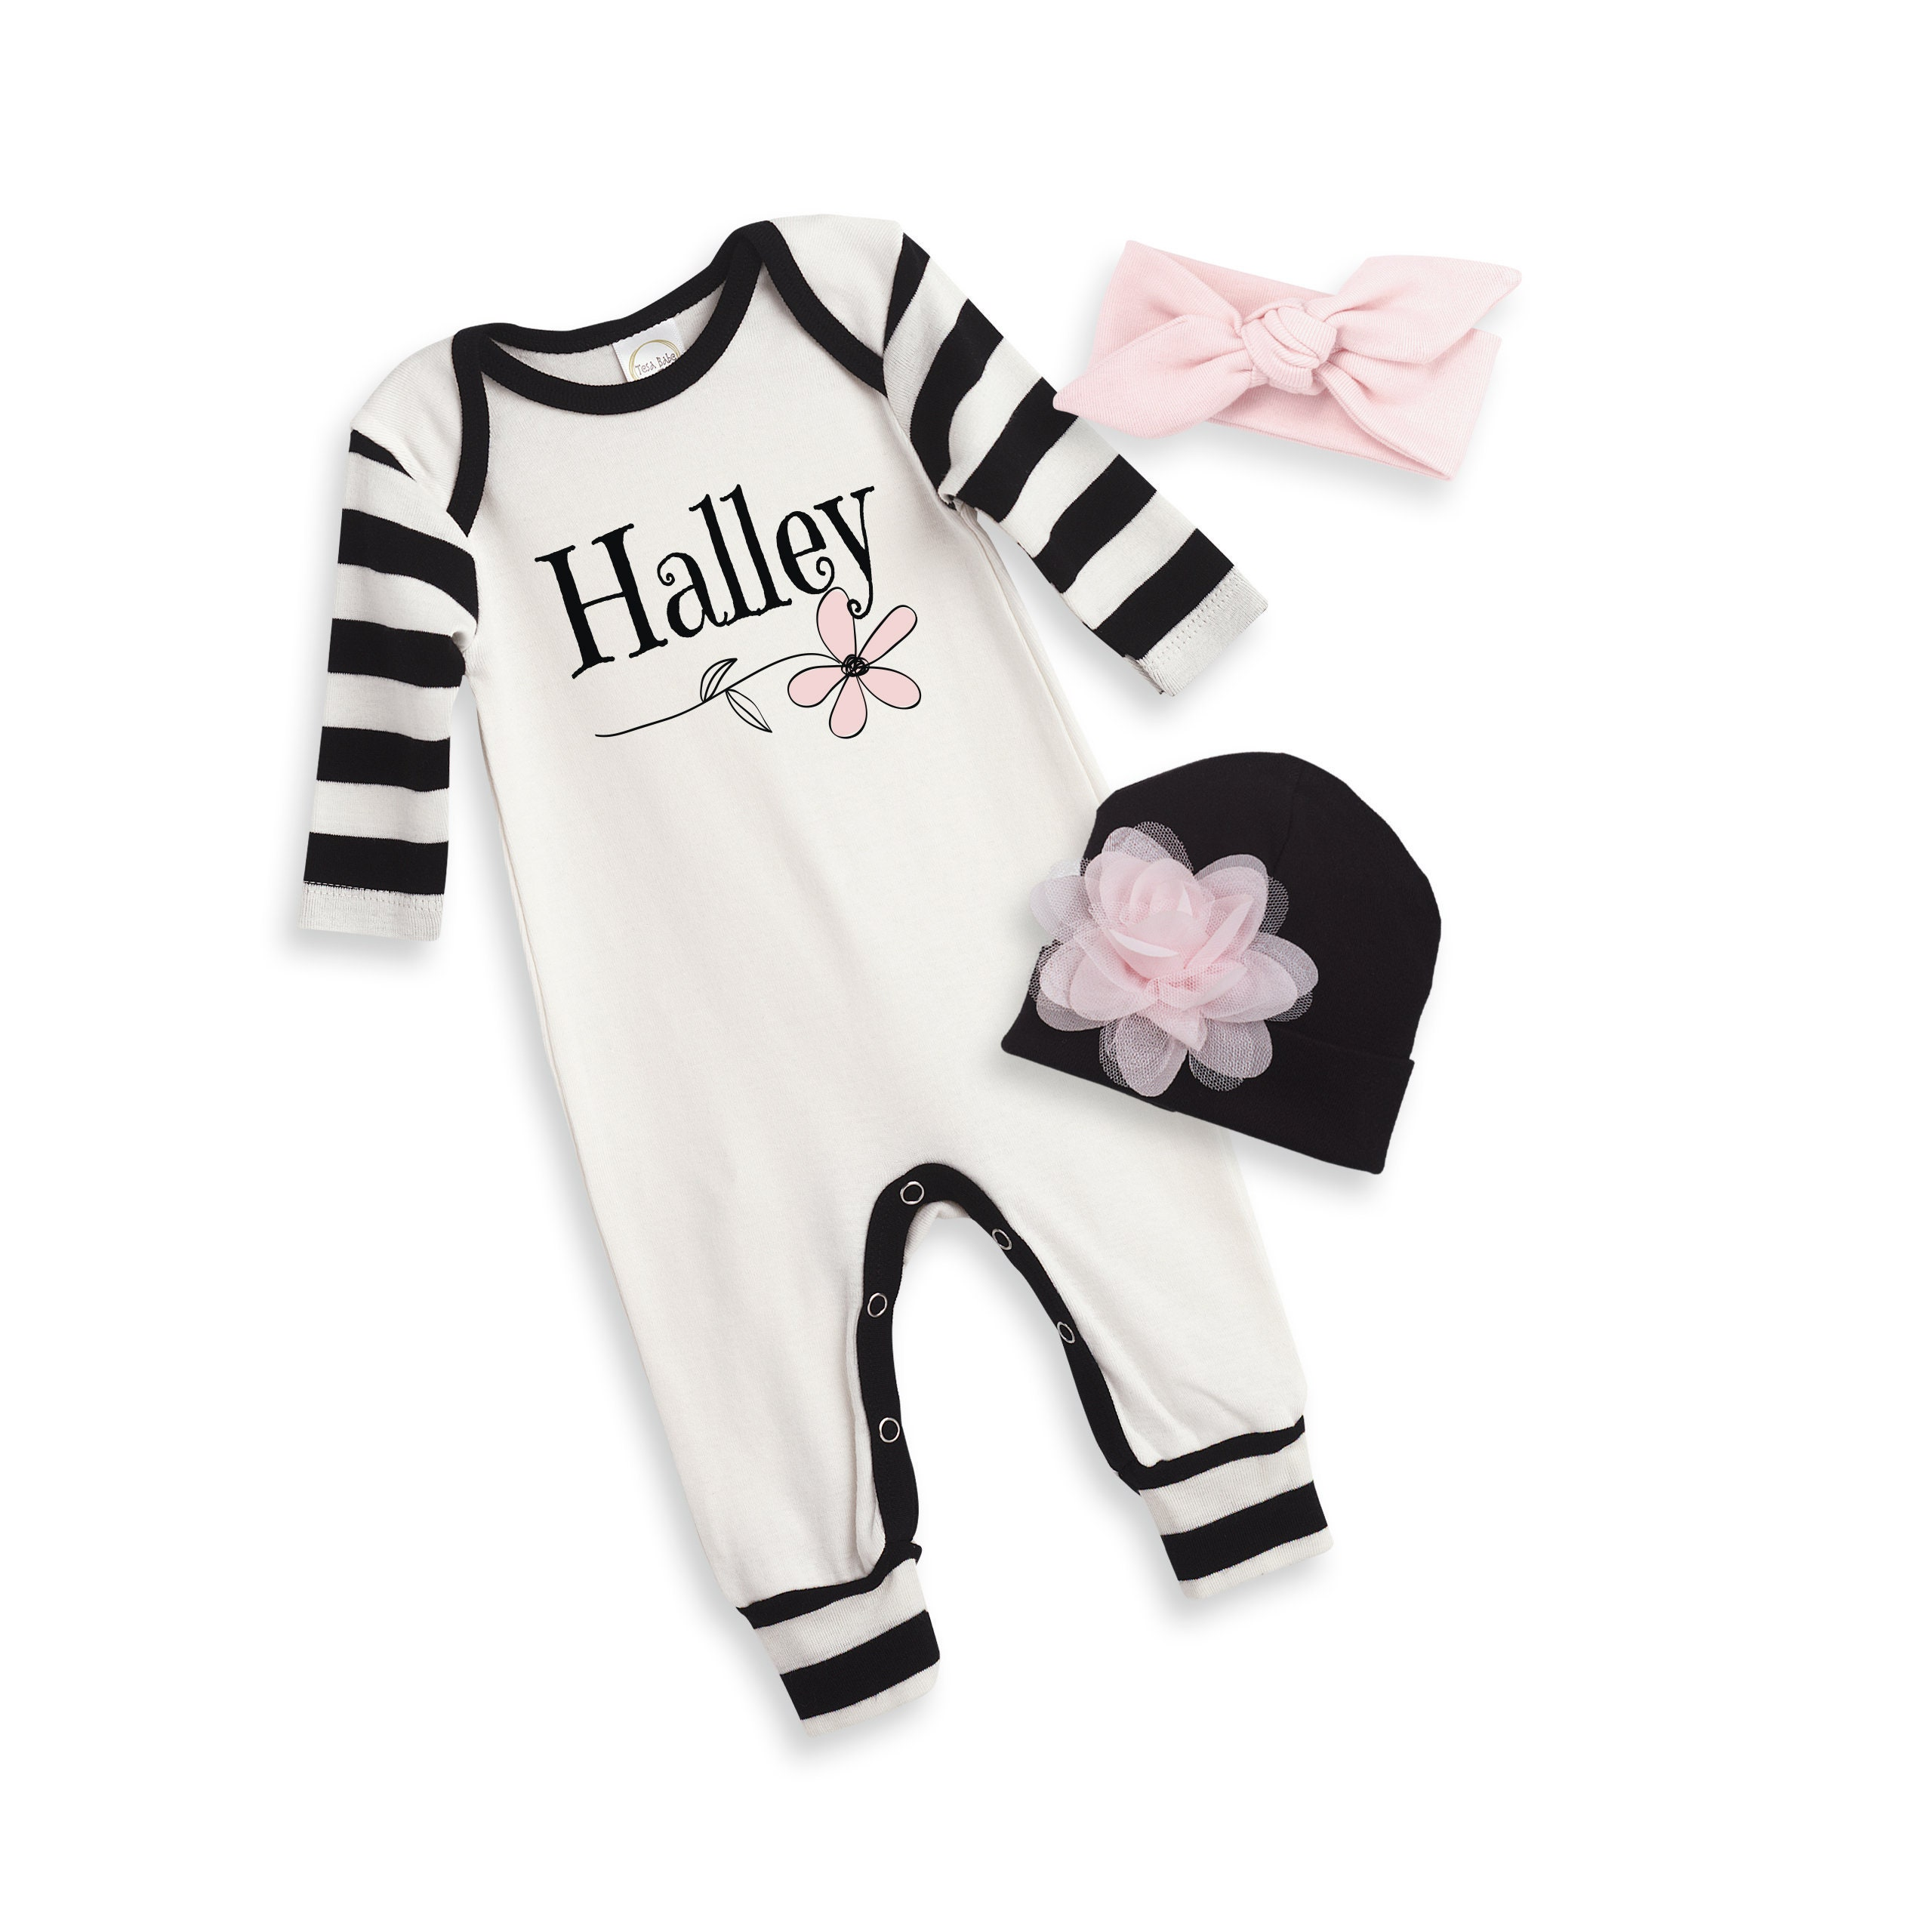 7cbe0d3f8b4 Personalized Newborn Girl Coming Home Outfit